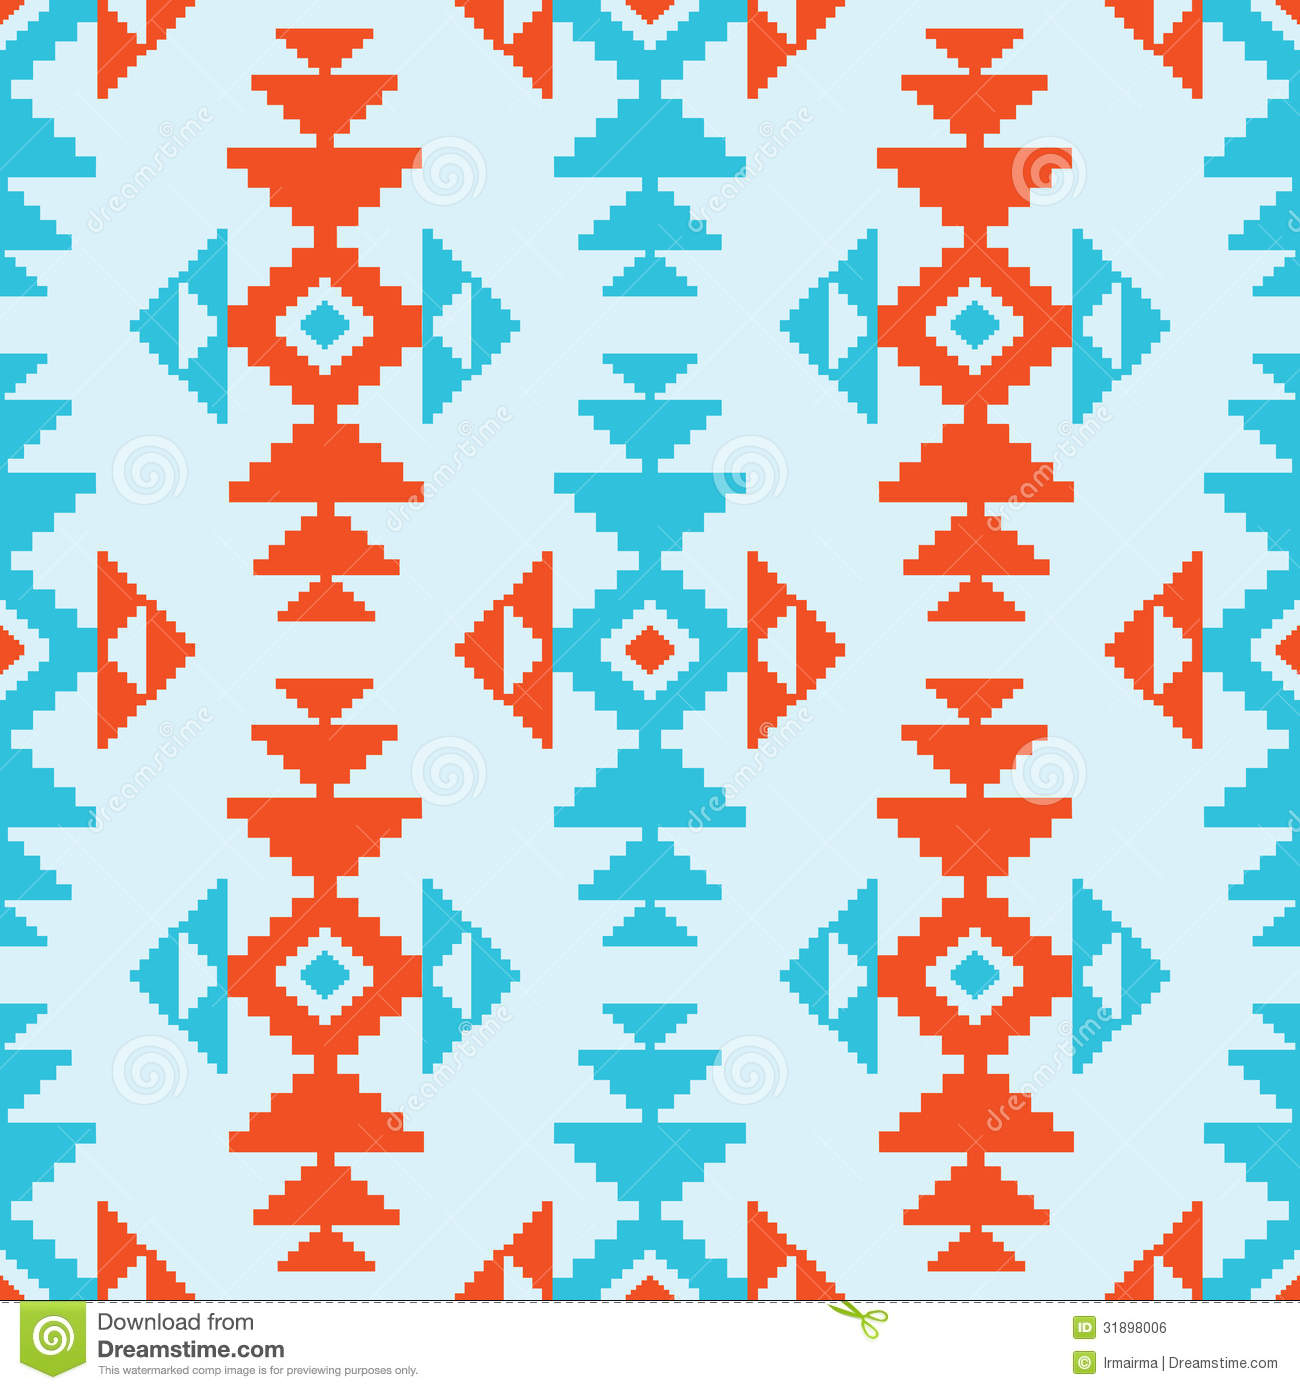 Clipart patterns svg library download American Indian Patterns Clipart svg library download